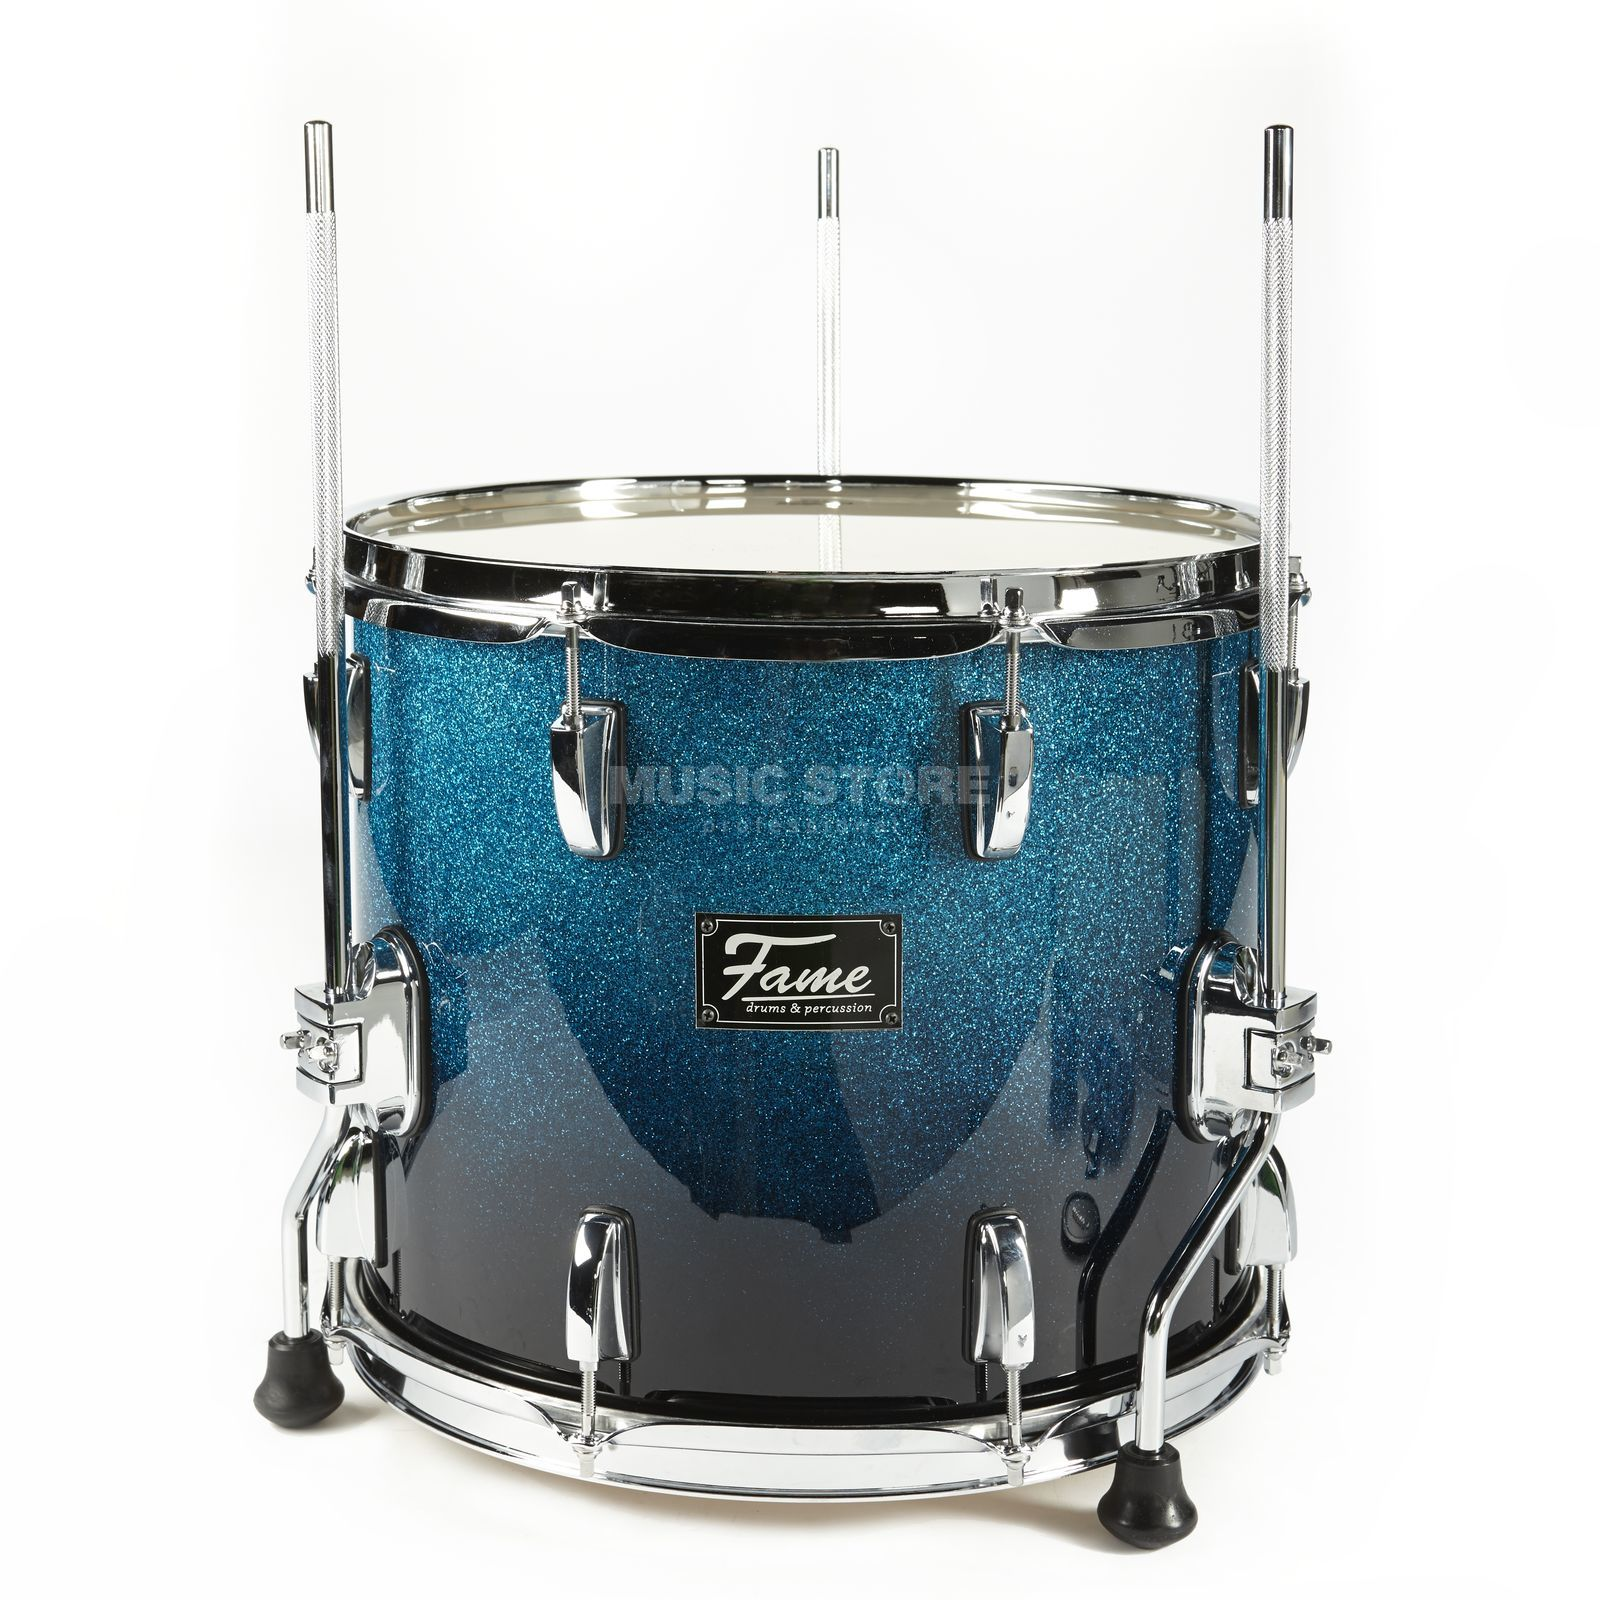 "Fame Fire FloorTom 16""x14"", #Blue Fade Sparkle Product Image"